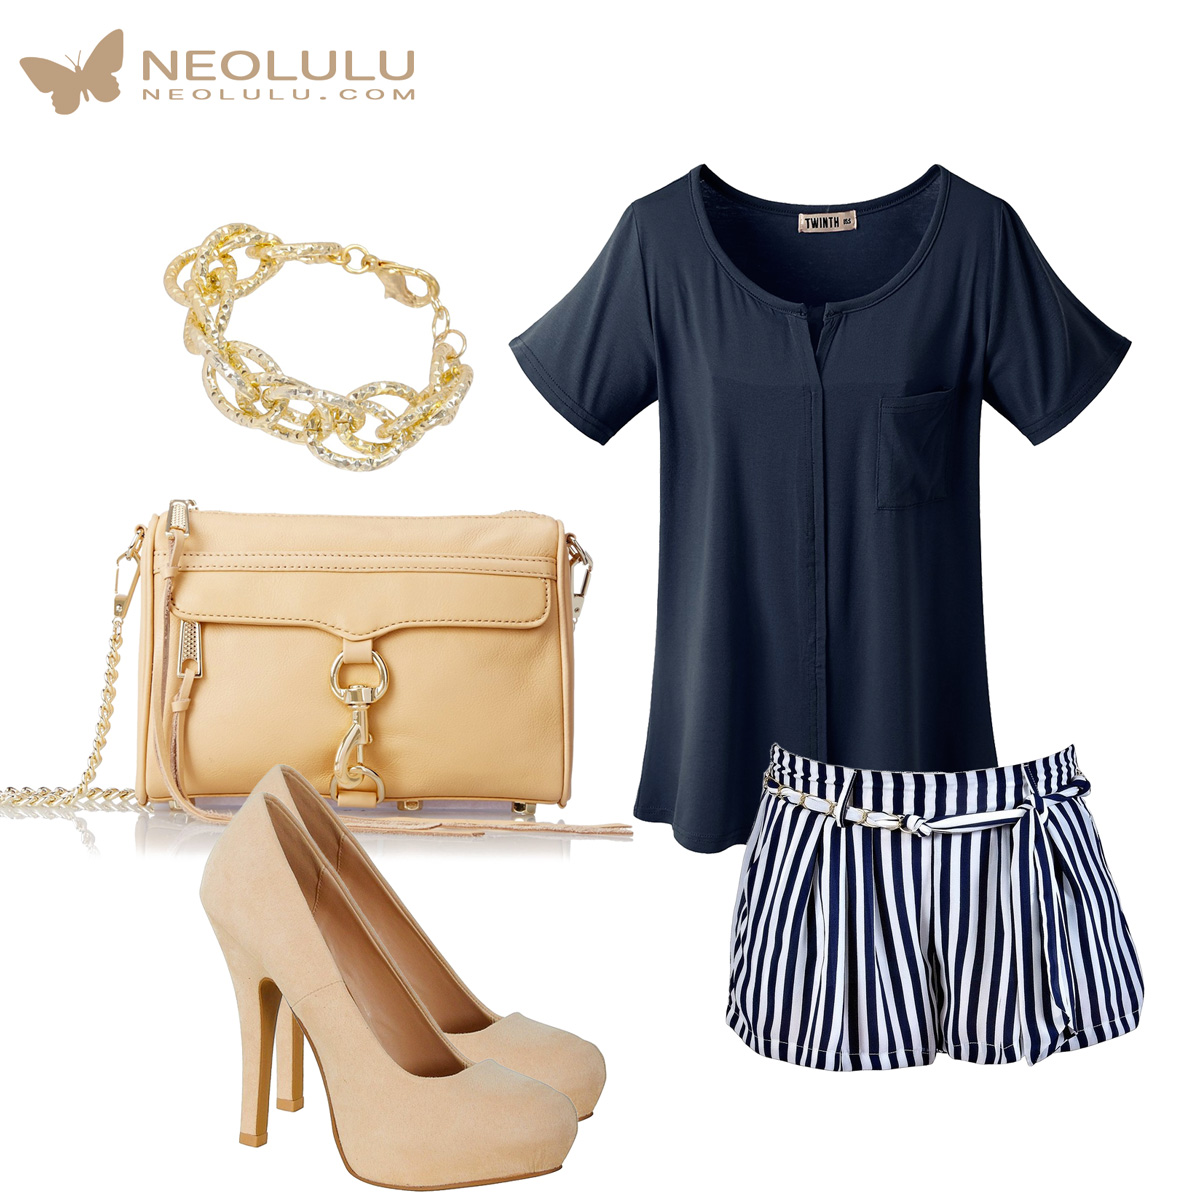 Sail Away: Navy Stripe Shorts & Top, Nude Pumps & Mini Mac Bag